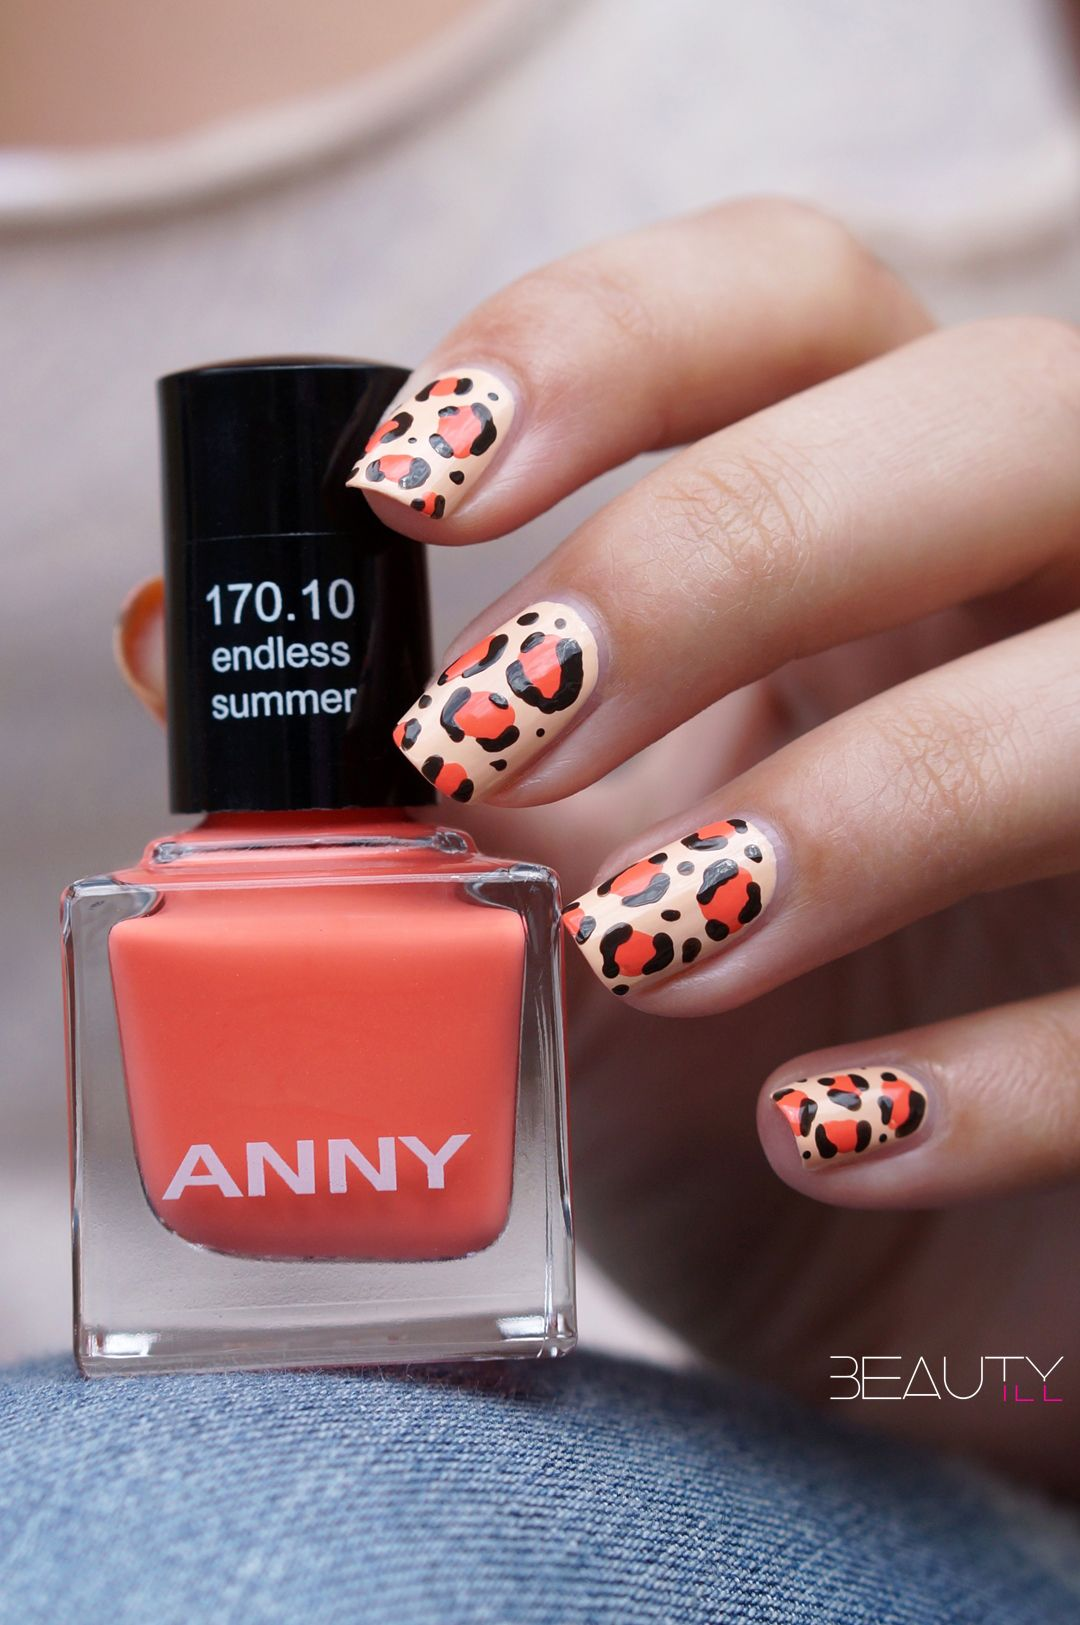 Anny Cruising In Miami Leopard Nail Art Nailart By Beautyill